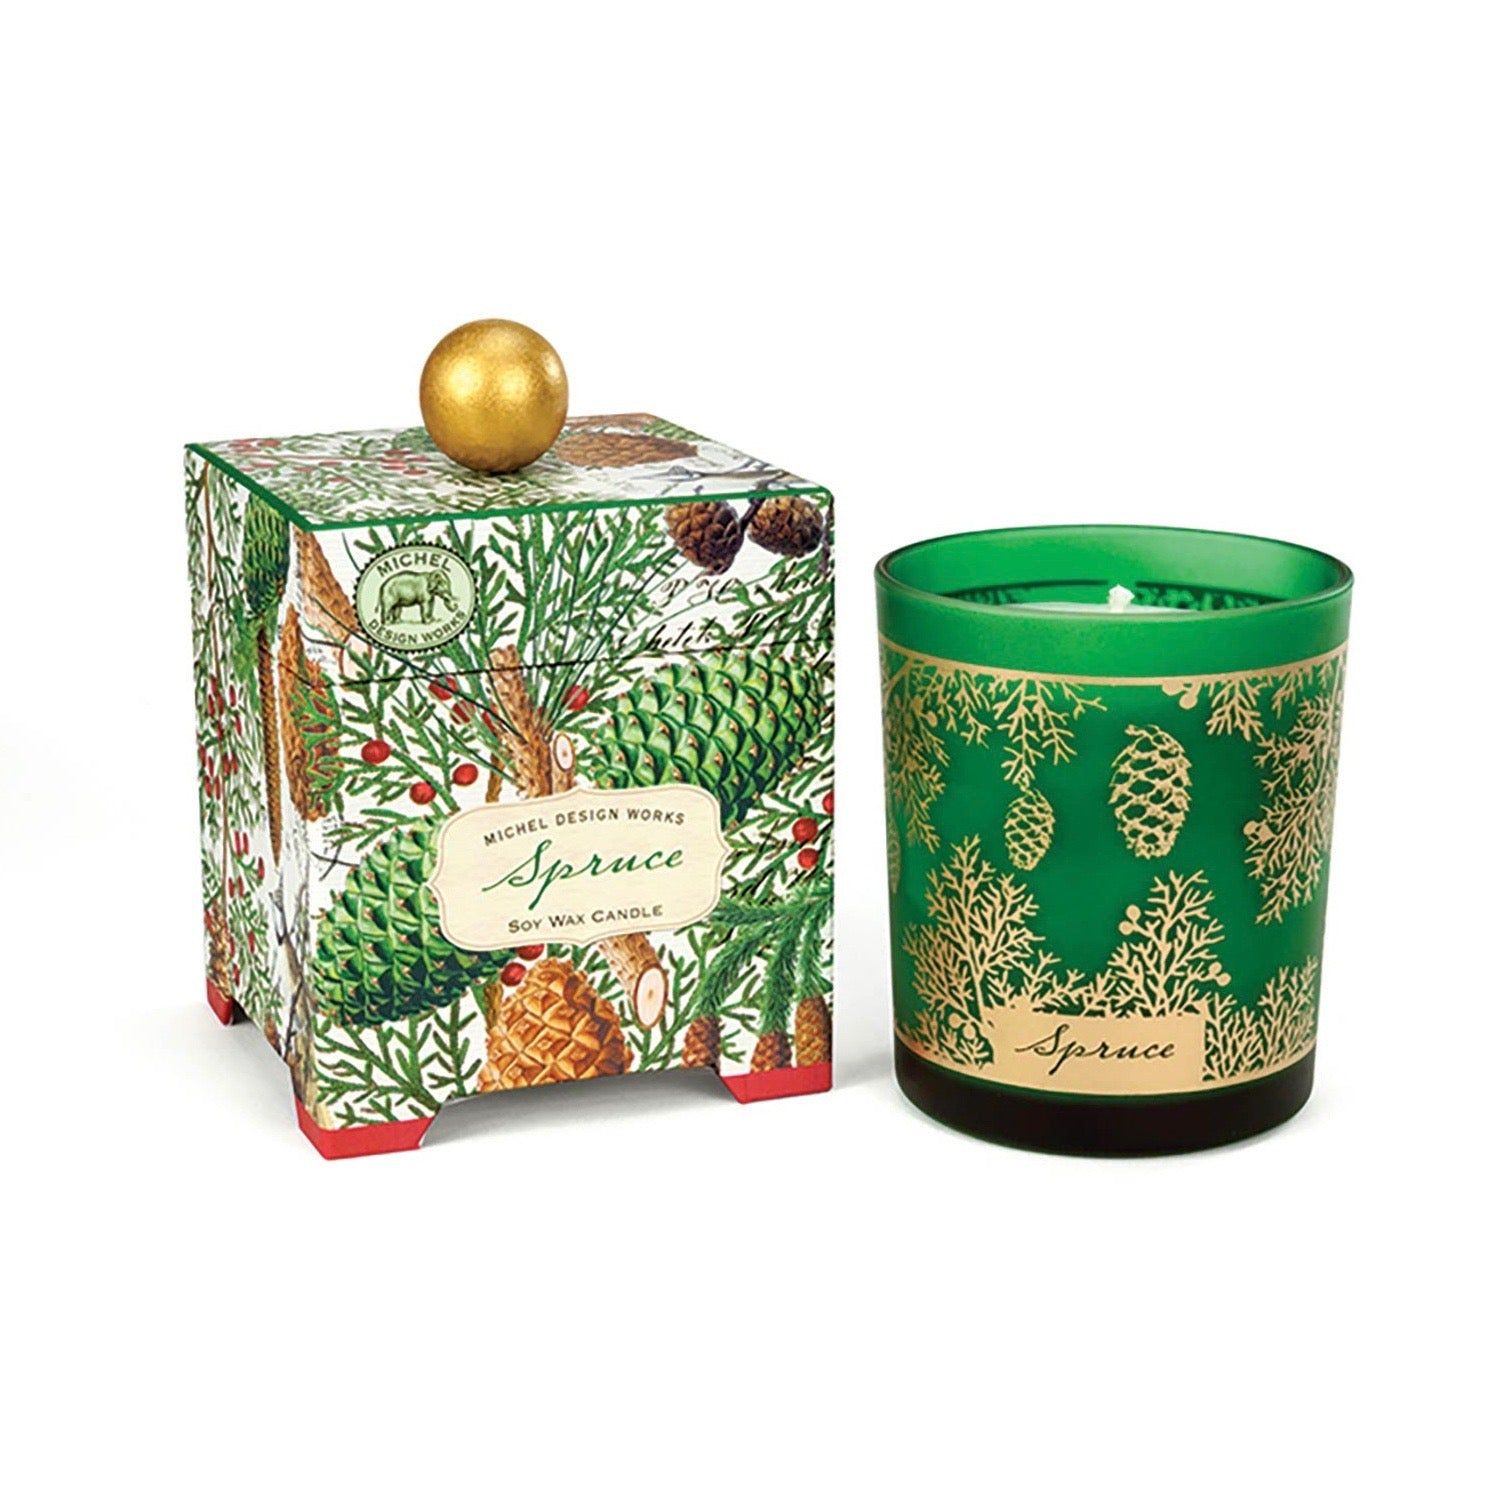 Michel Design Works Spruce Soy Wax Candle - 14oz